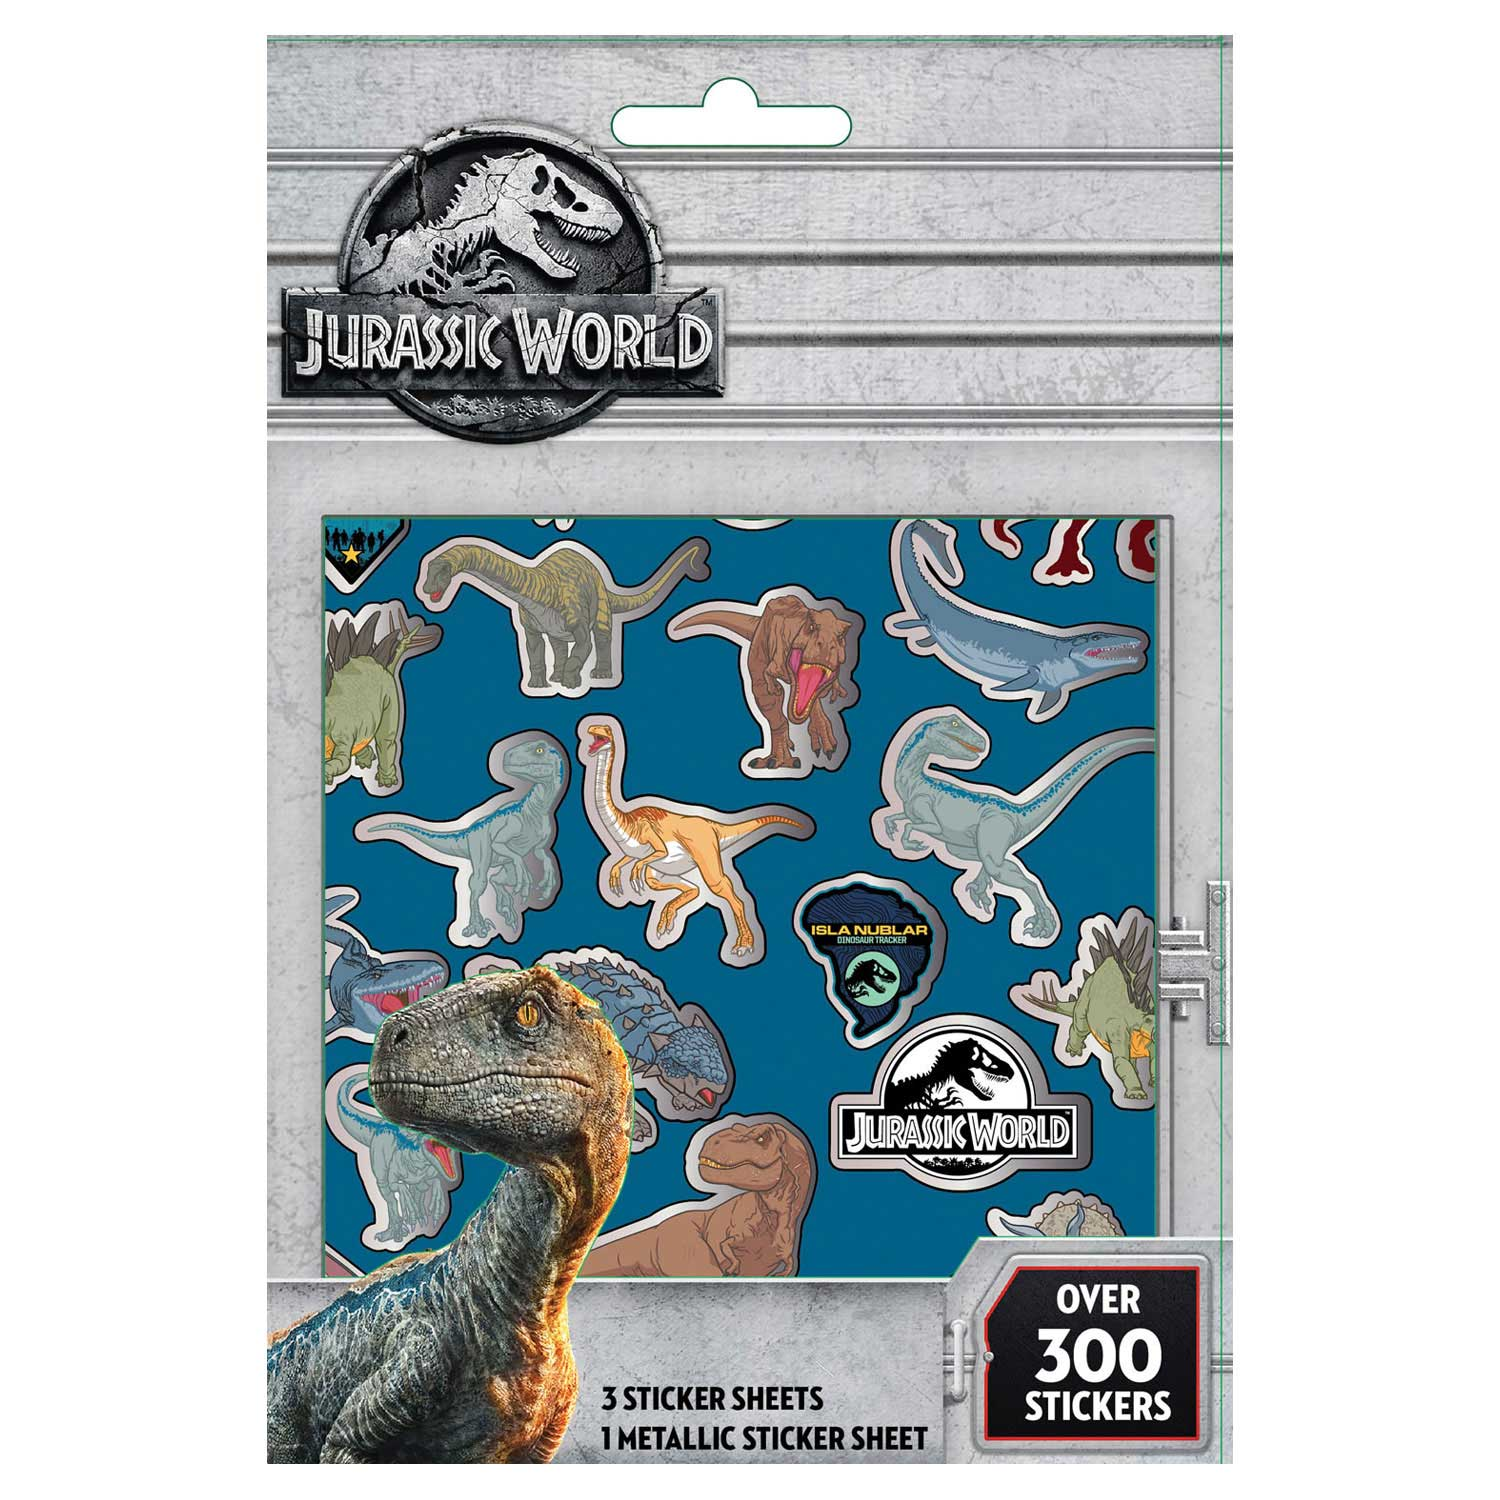 Stickervellen Jurrasic World